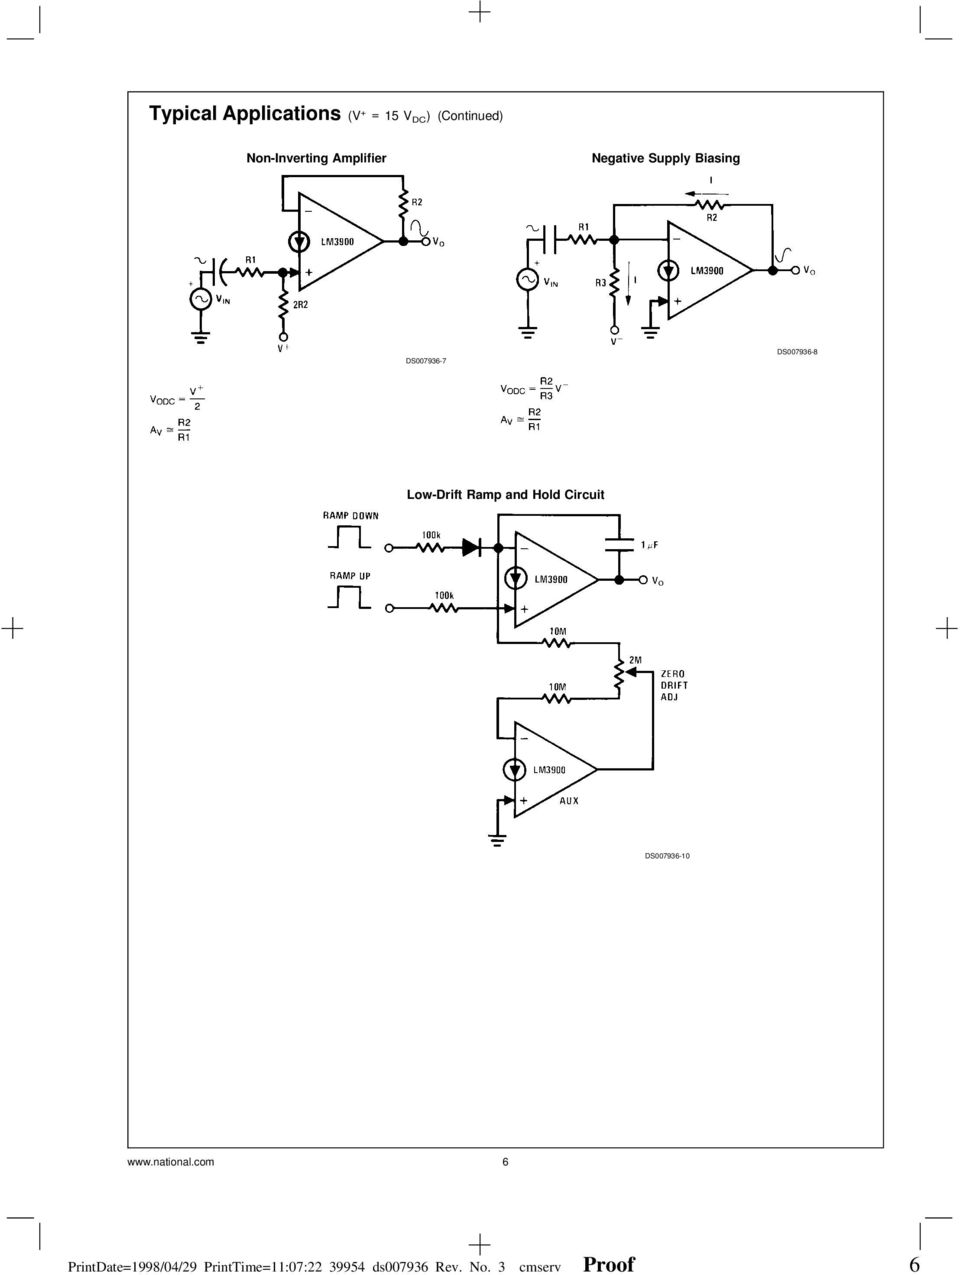 Lm2900lm3301lm3900 Lm2900 Lm3900 Lm3301 Quad Amplifiers Channel Audio Mixer Circuit Using Simple Schematic Diagram Ds007936 10 National